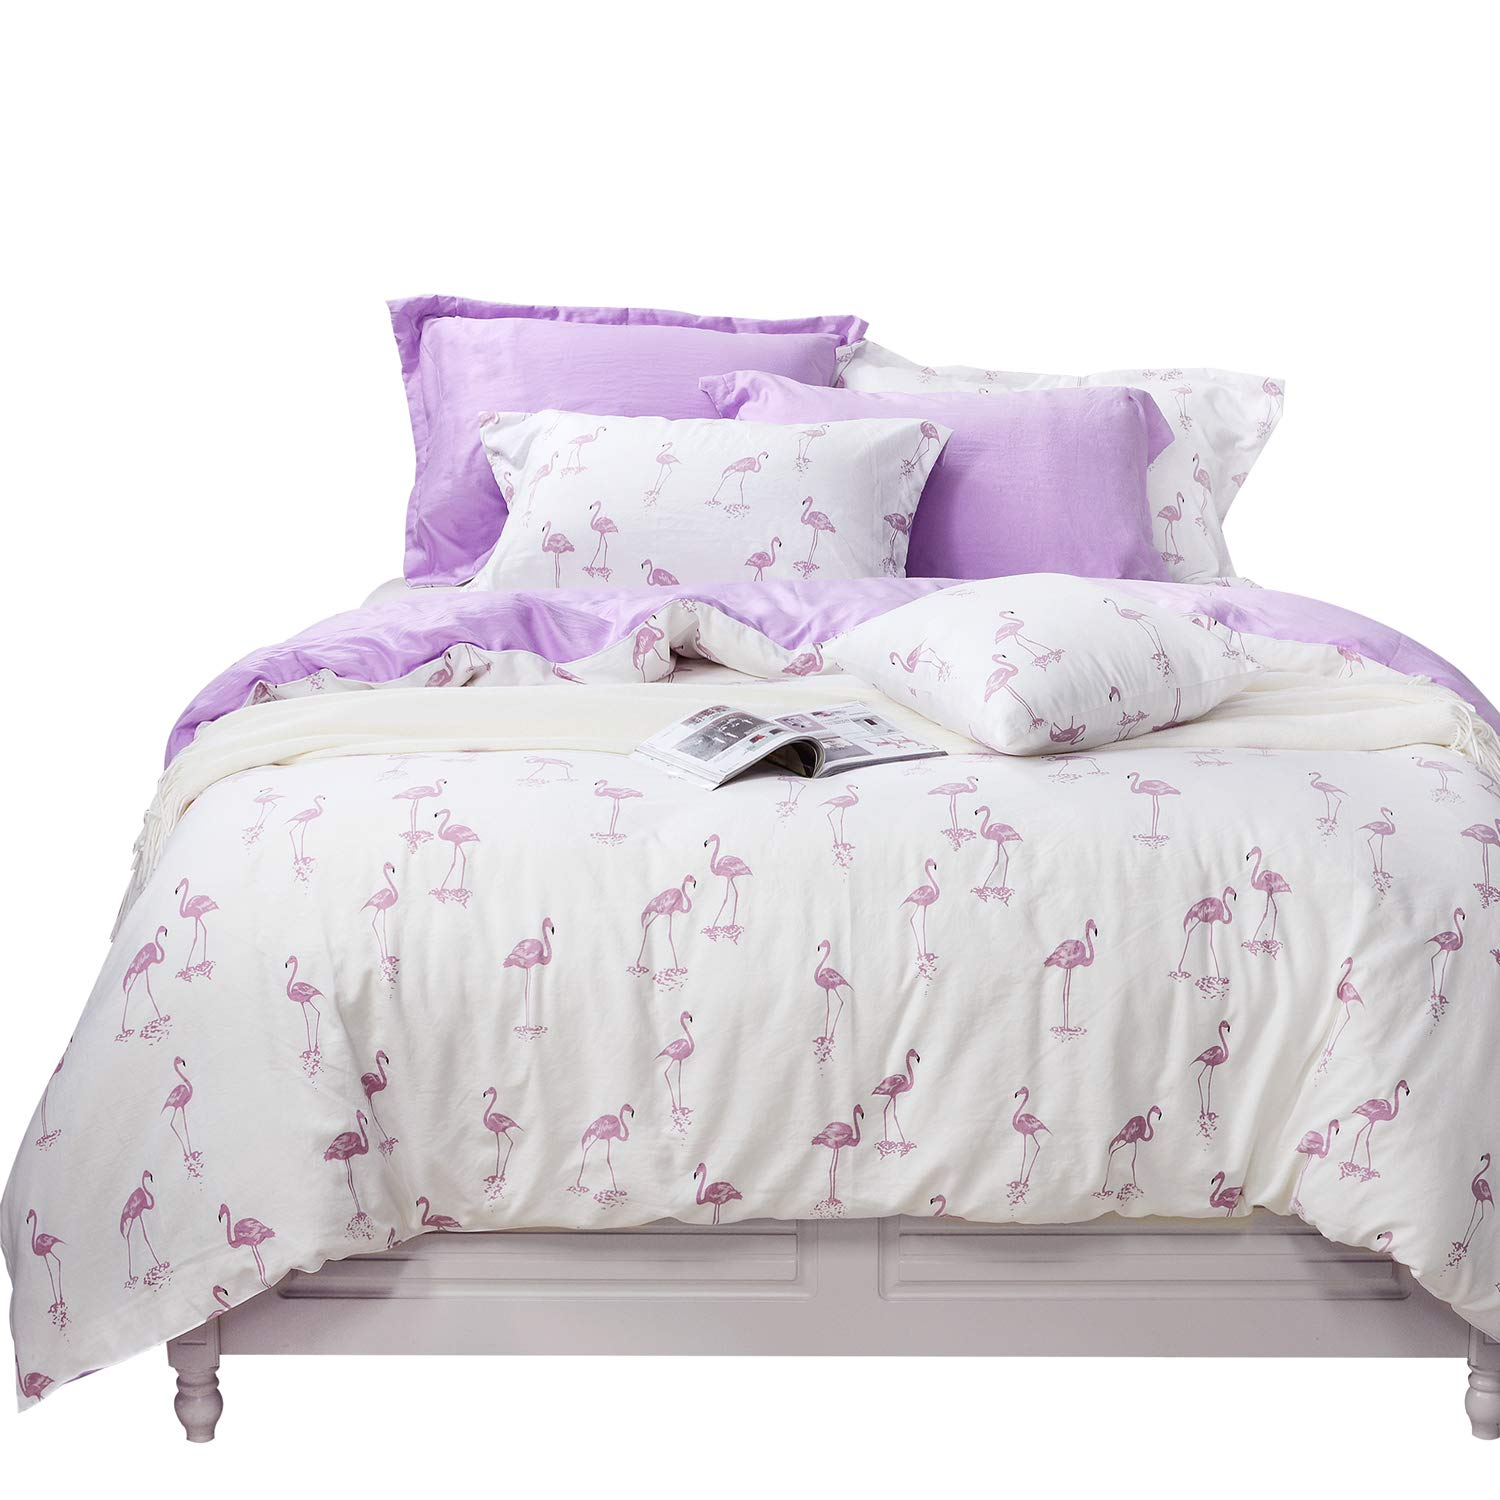 Tealp Flamingo Bedding Sets Soft Washed Cotton Duvet Cover Pink and Purple,3 Piece(1 Duvet Cover + 2 Pillow Shams),Cream White,Queen